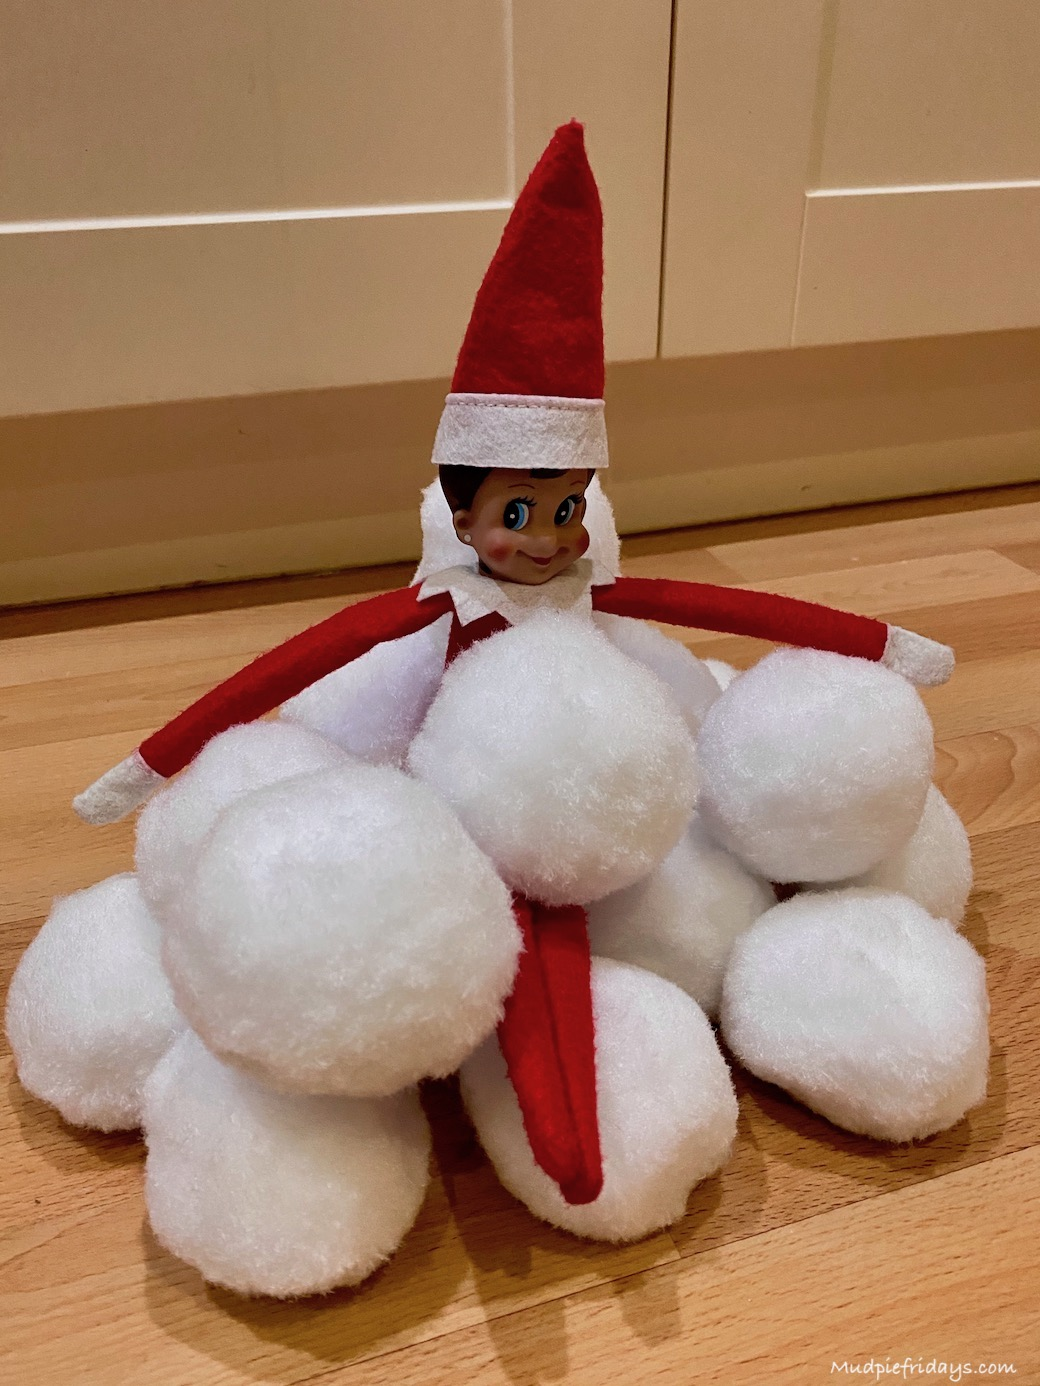 Elf on the shelf with snowballs